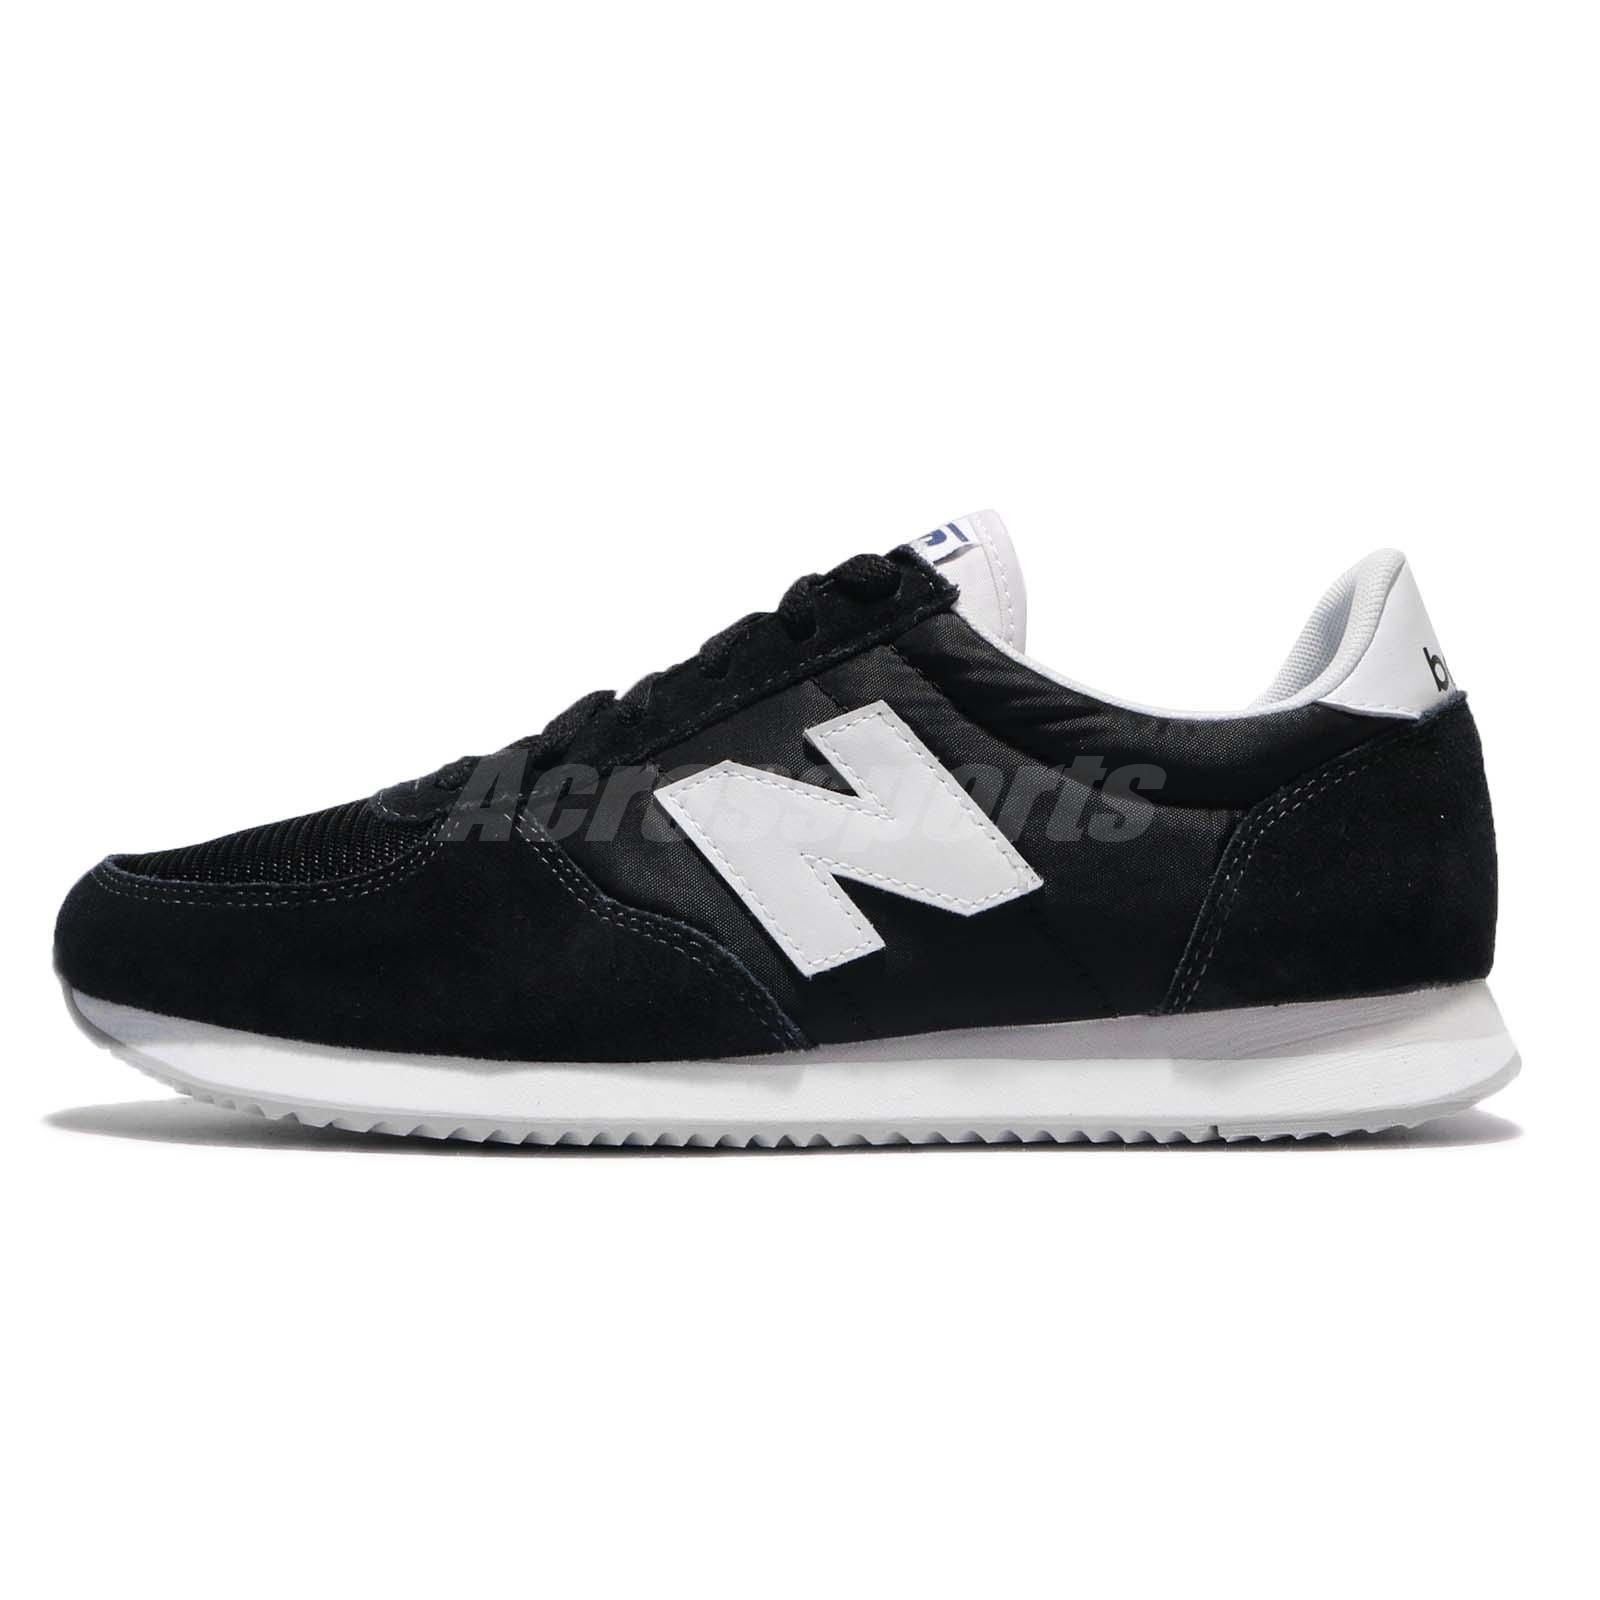 New Balance U220BK D Black Men Running Shoes Sneakers Trainers U220BKD